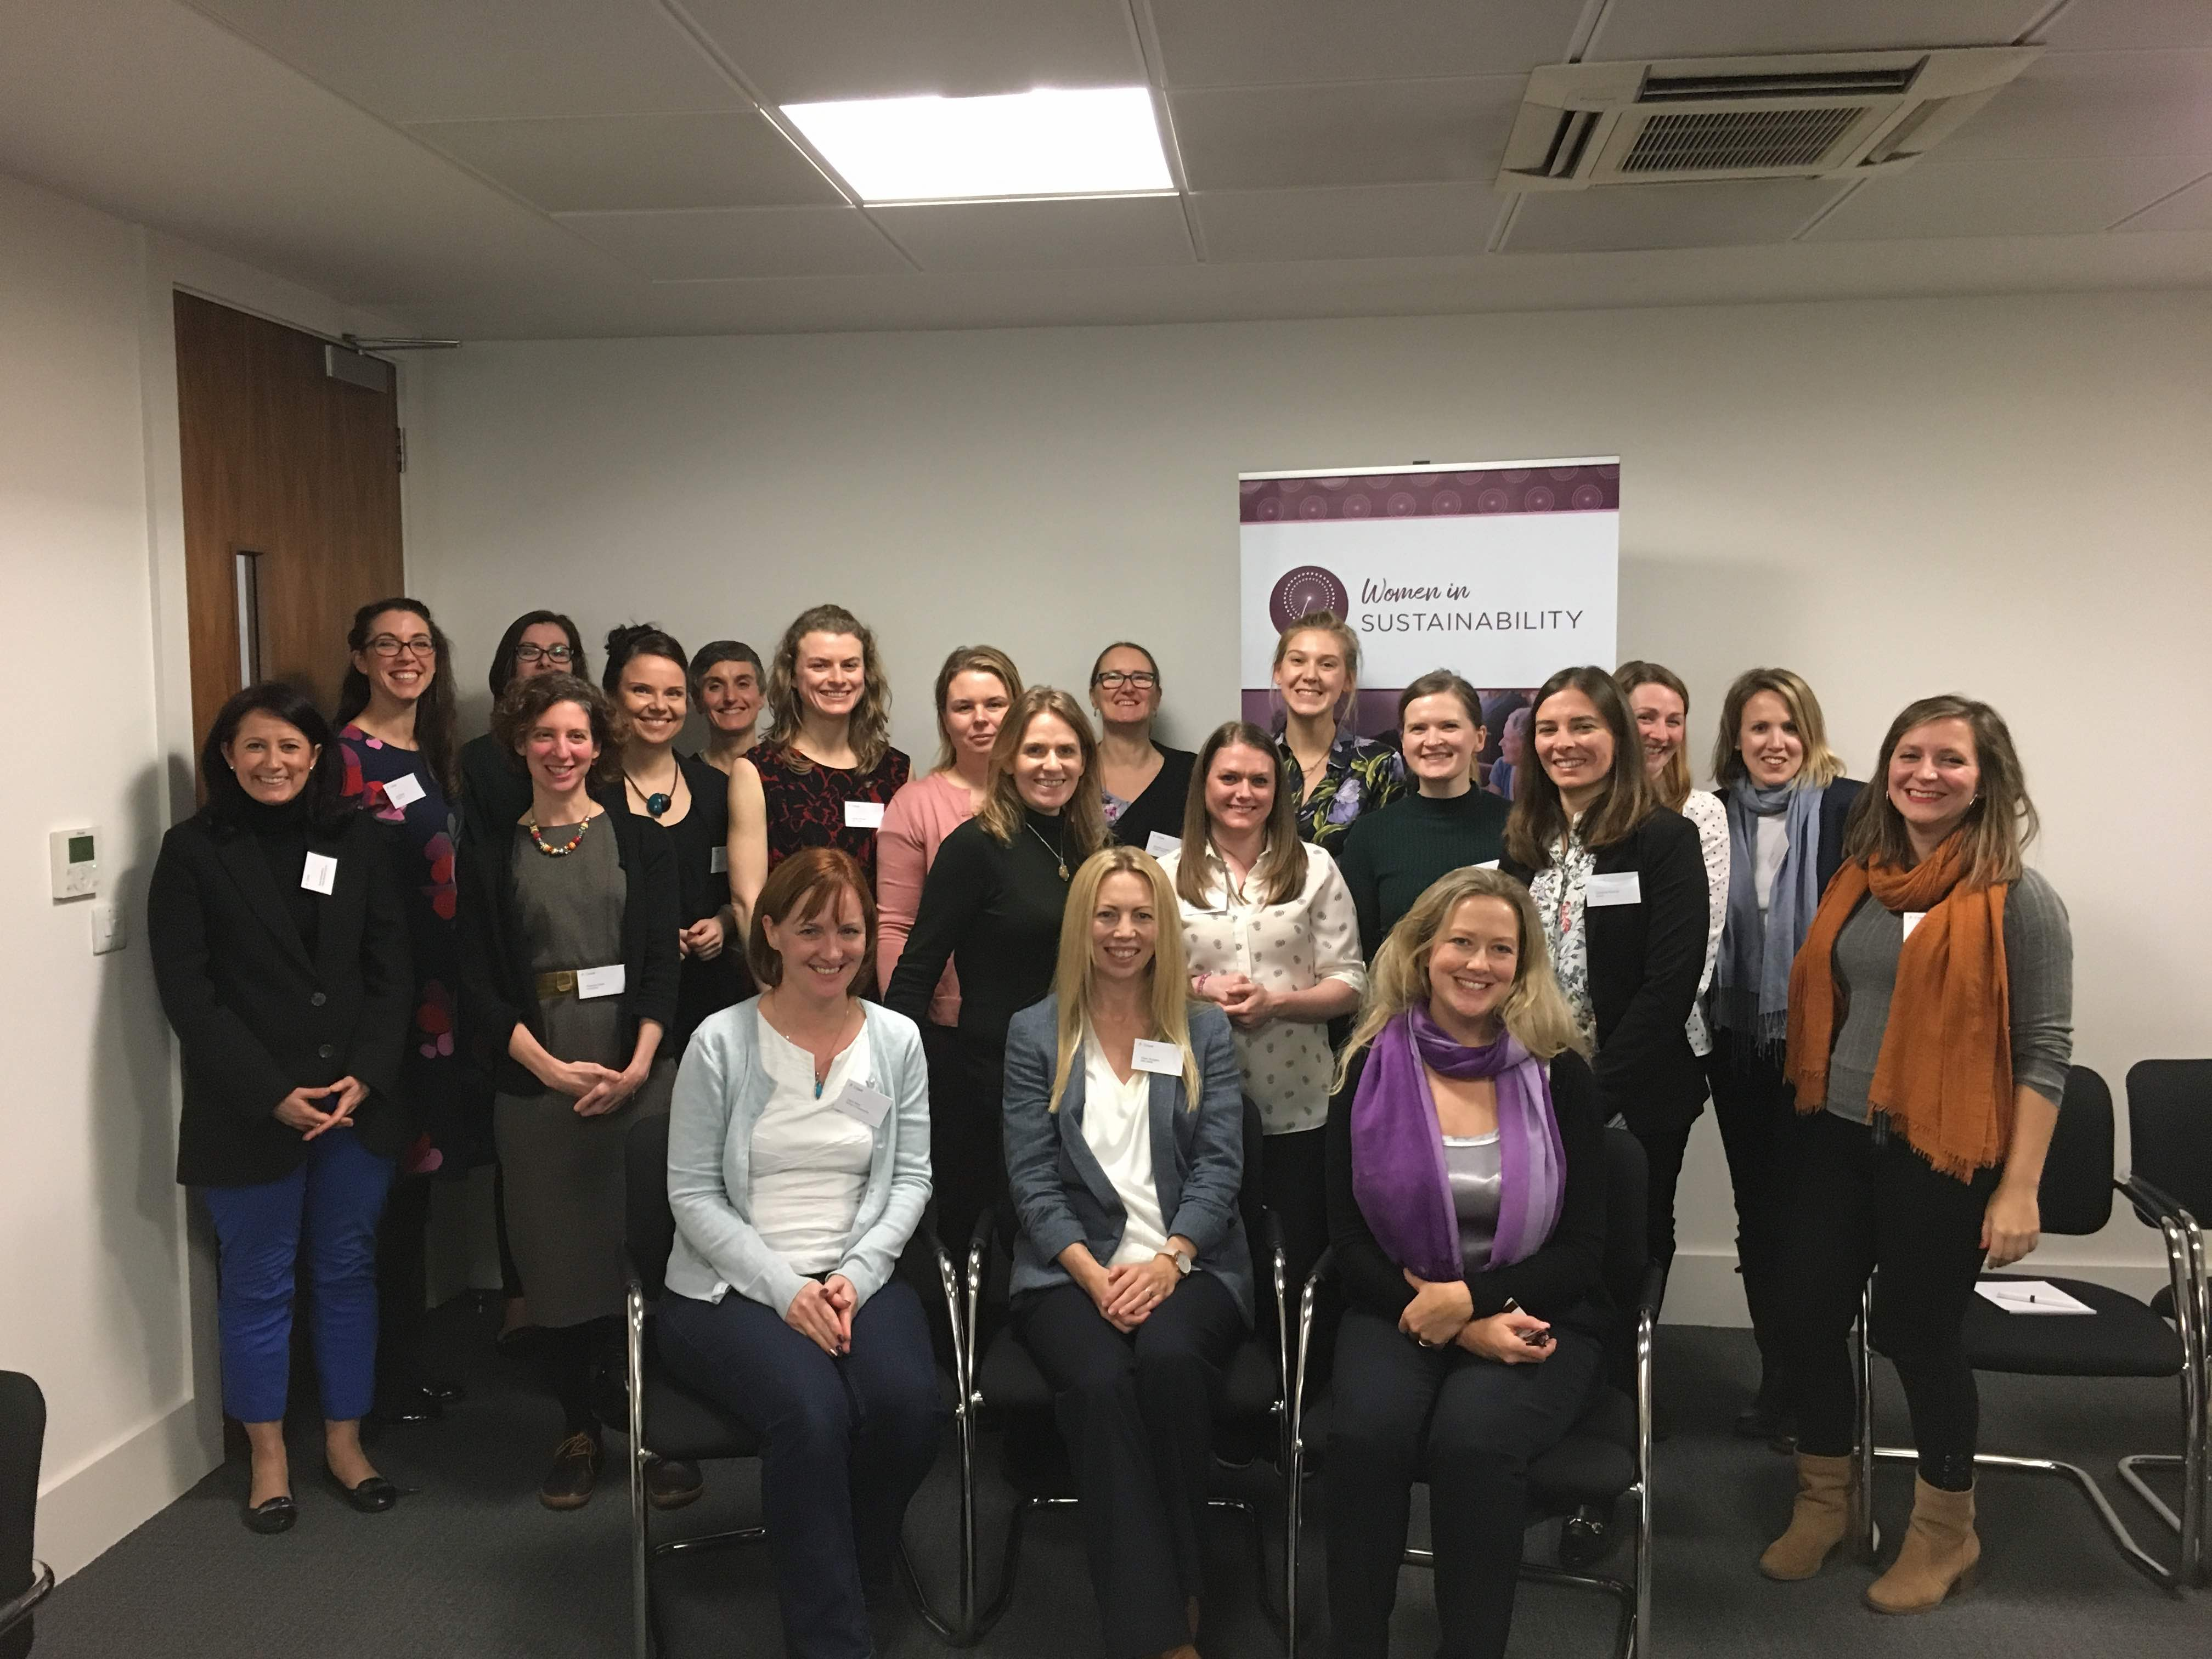 Manchester Women in Sustainability